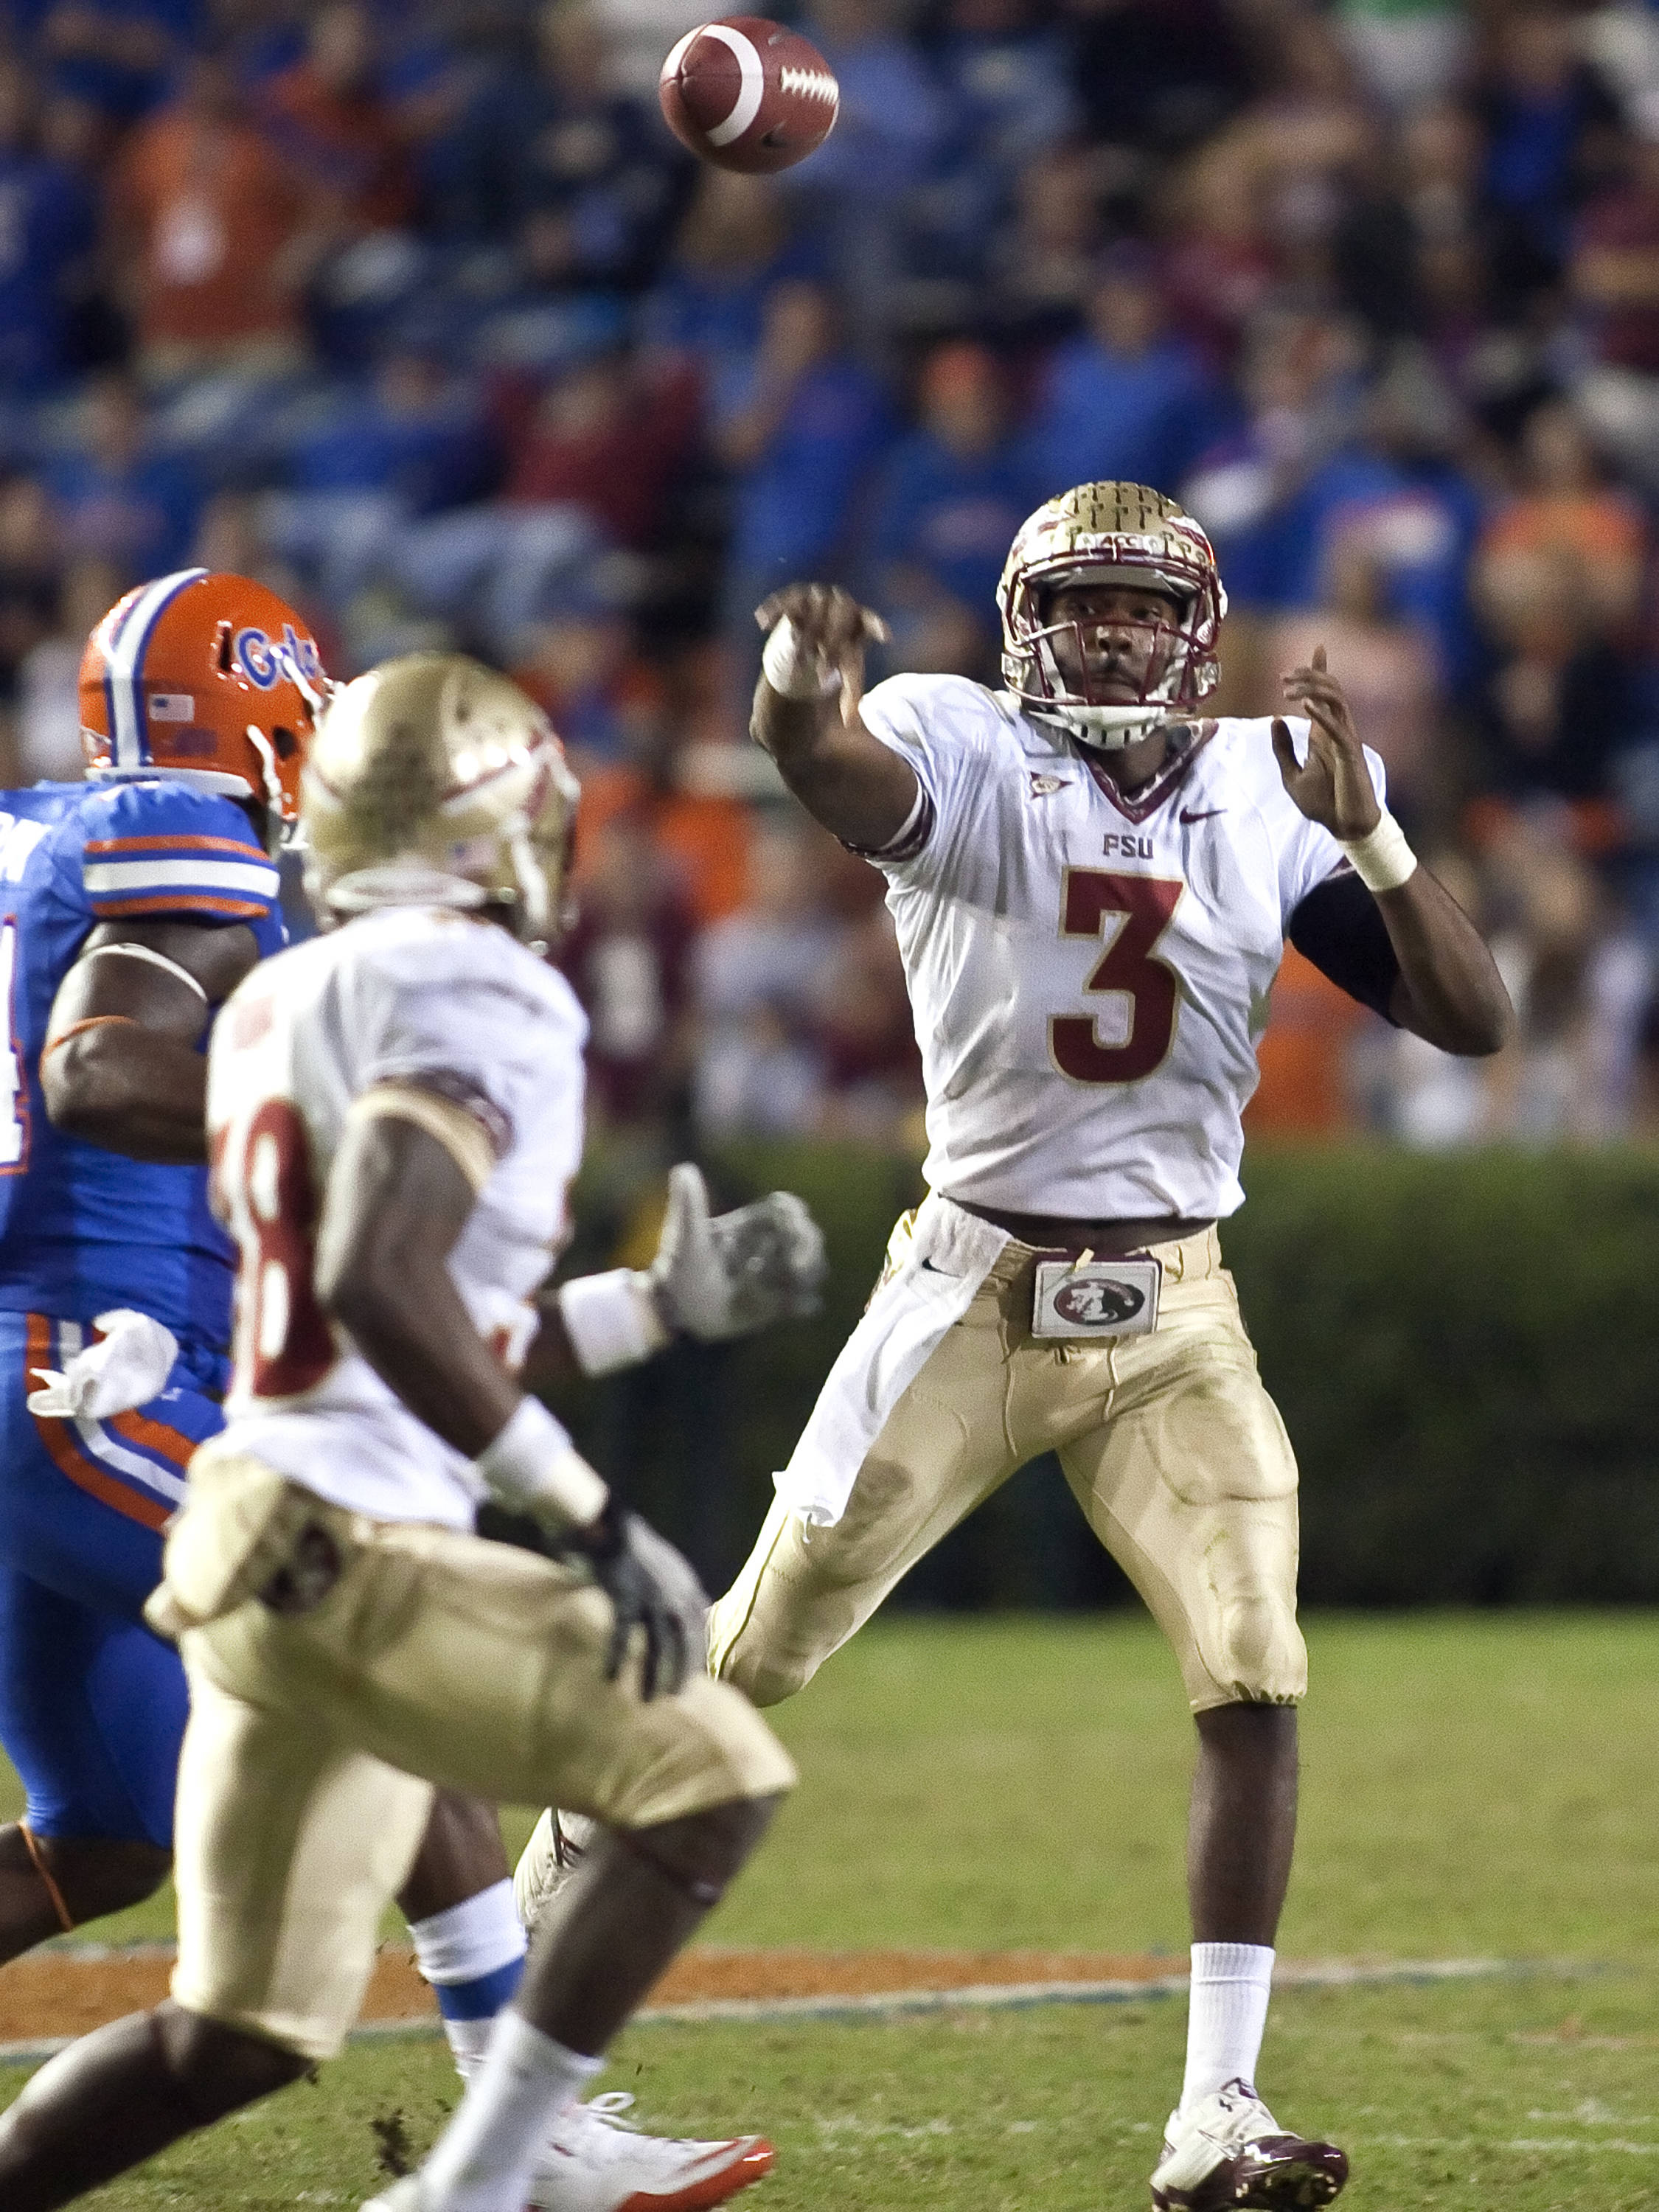 EJ Manuel (3) with a short pass, FSU vs Florida, 11/26/2011